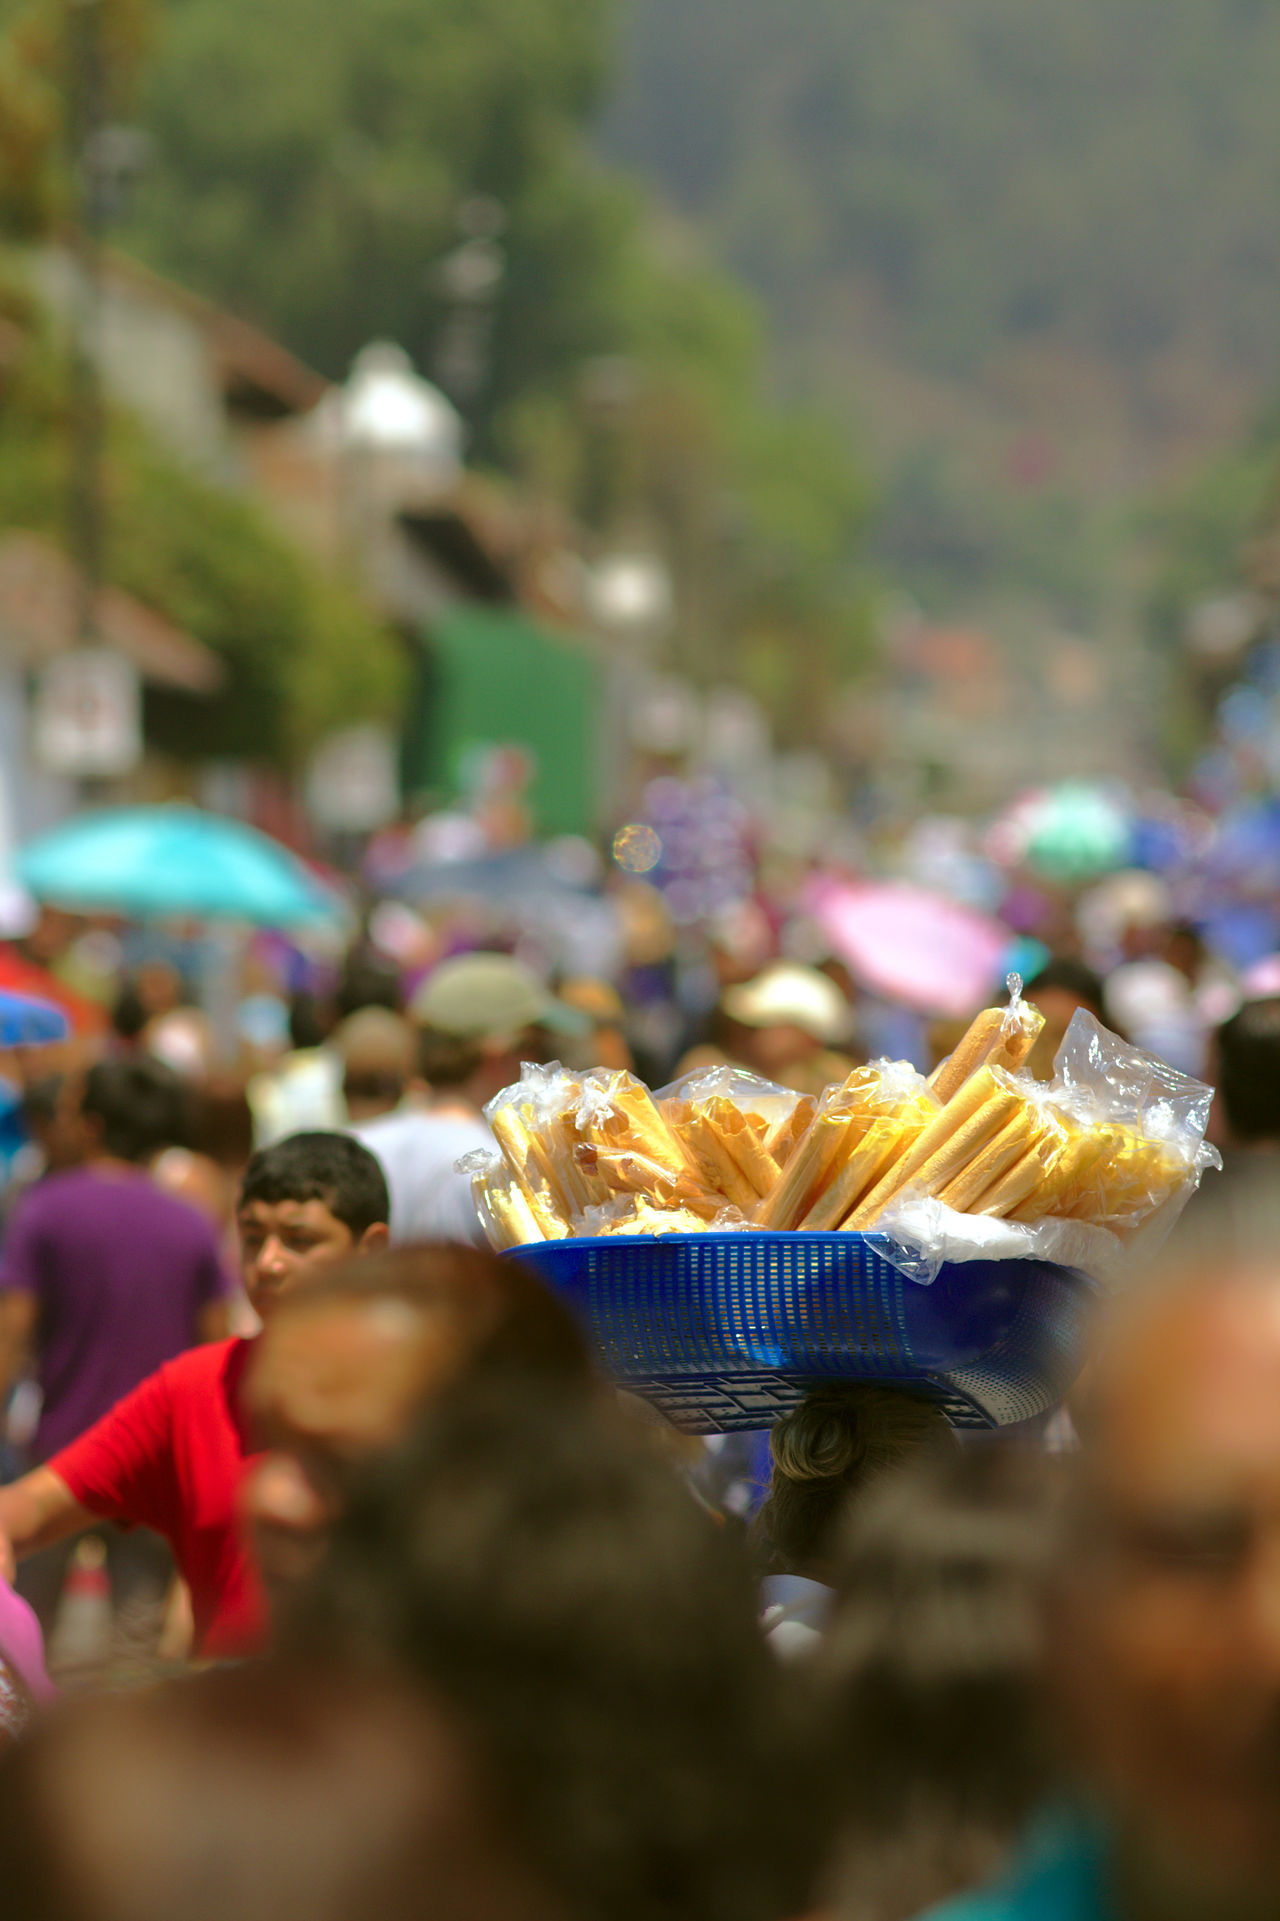 Churros Crowd Day Fine Art Photography Food For Sale Large Group Of People Market Men Outdoors People Real People Salesman Still Life Street Street Photography Street Sales Travel Destinations Travel Photography Unbrella Urban Exploration Urban Photography Western Guatemala